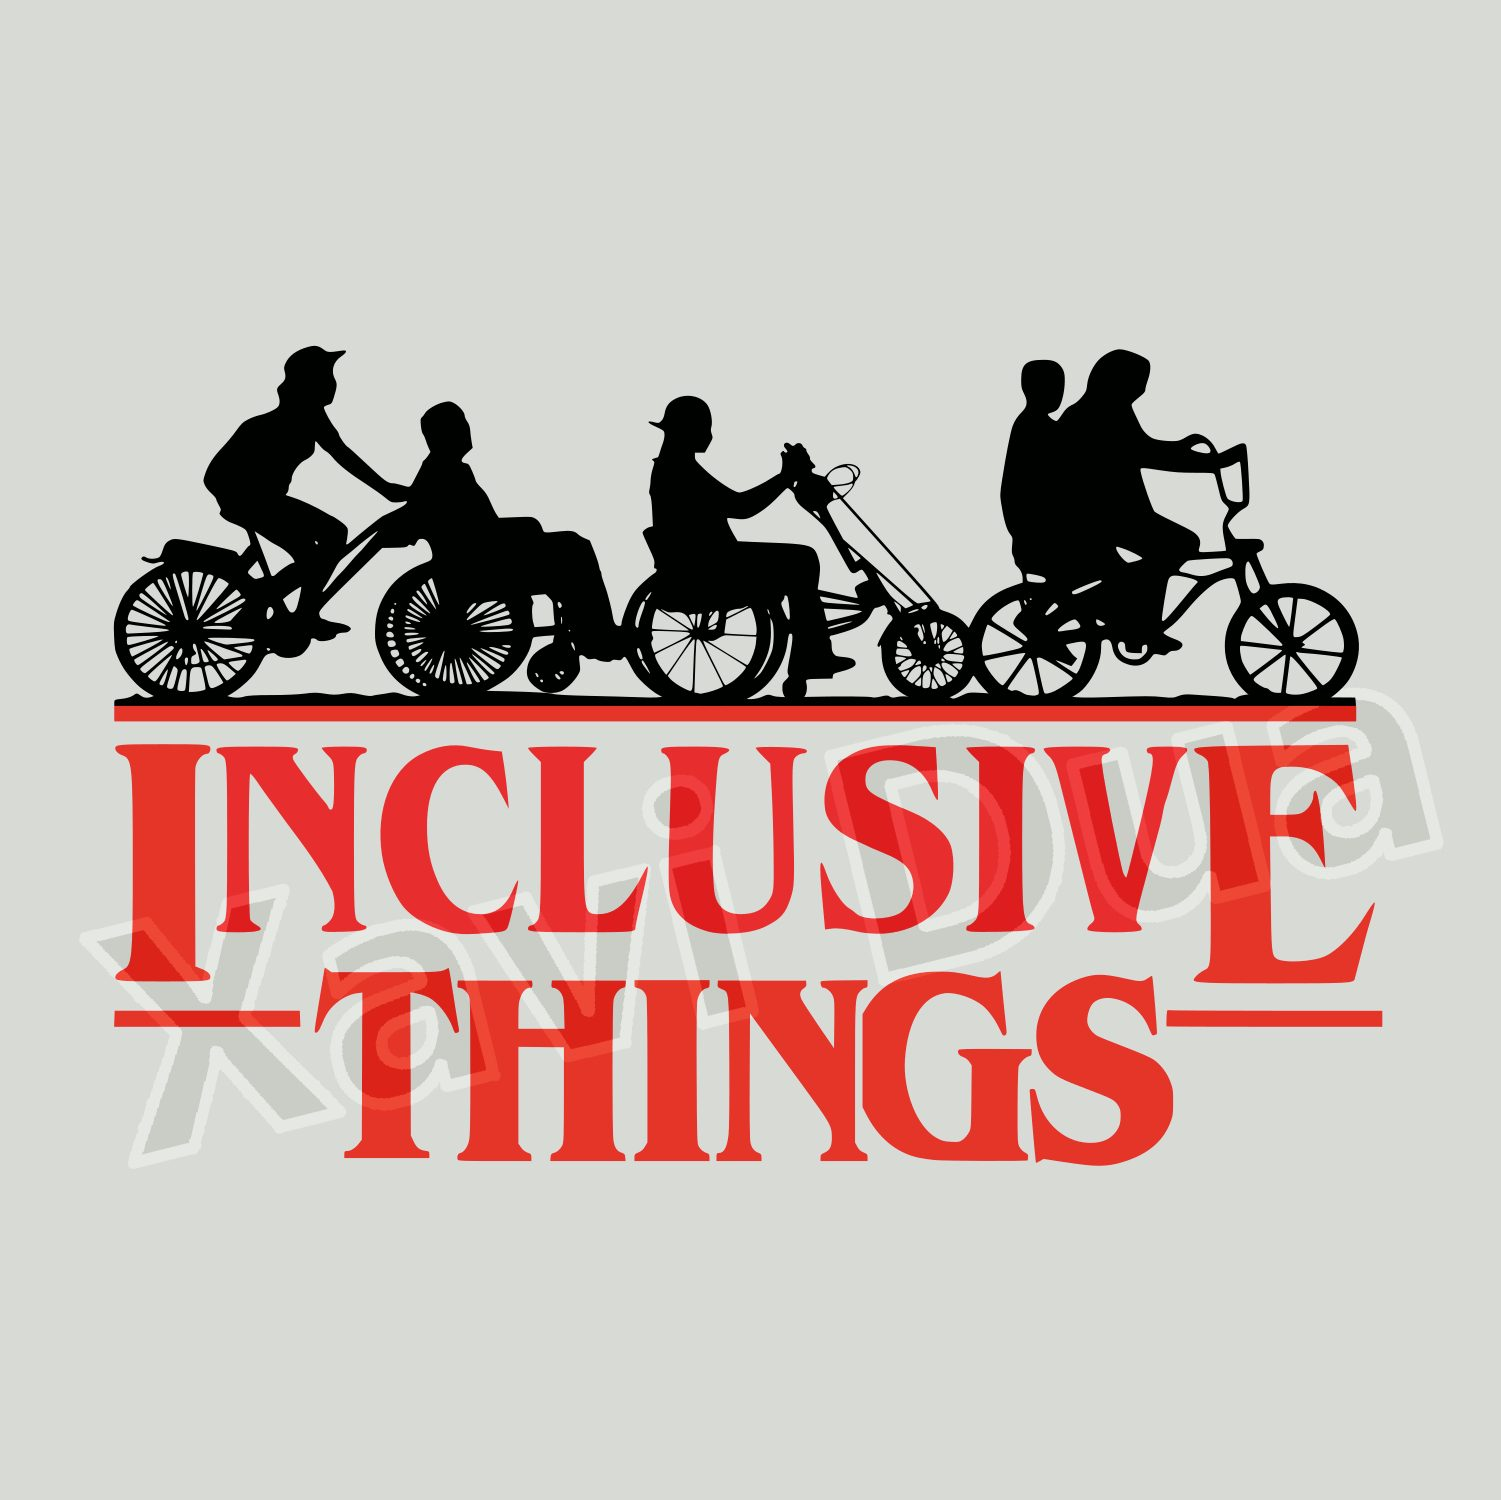 INCLUSIVETHINGS